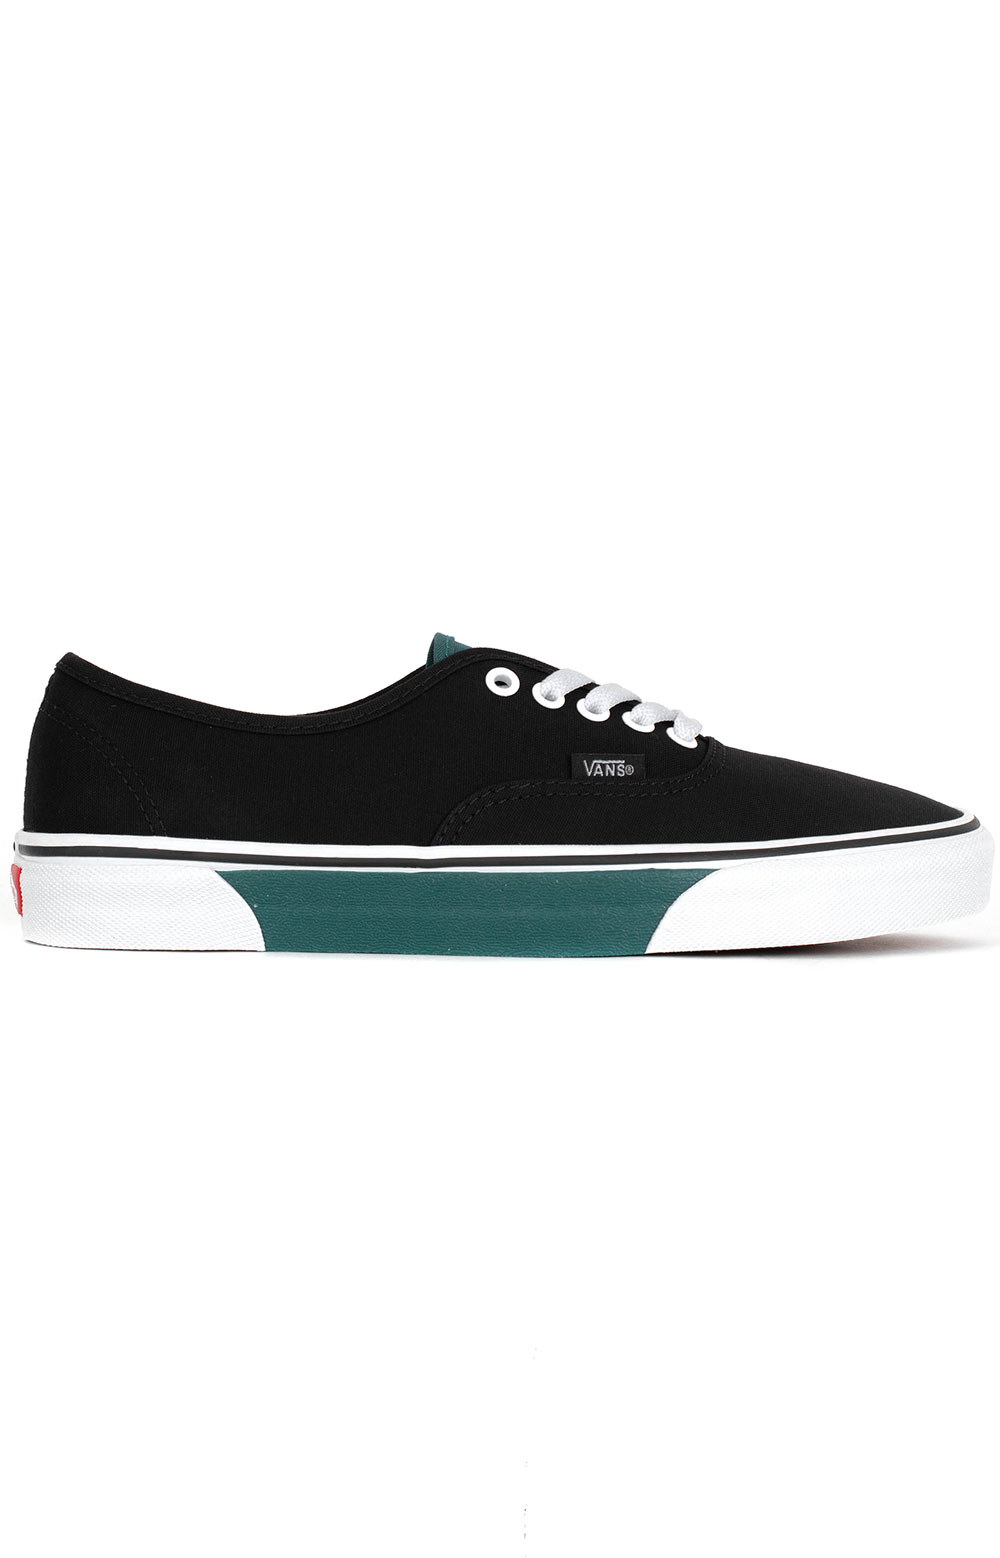 (8EMVJV) Color Block Authentic Shoe - Black